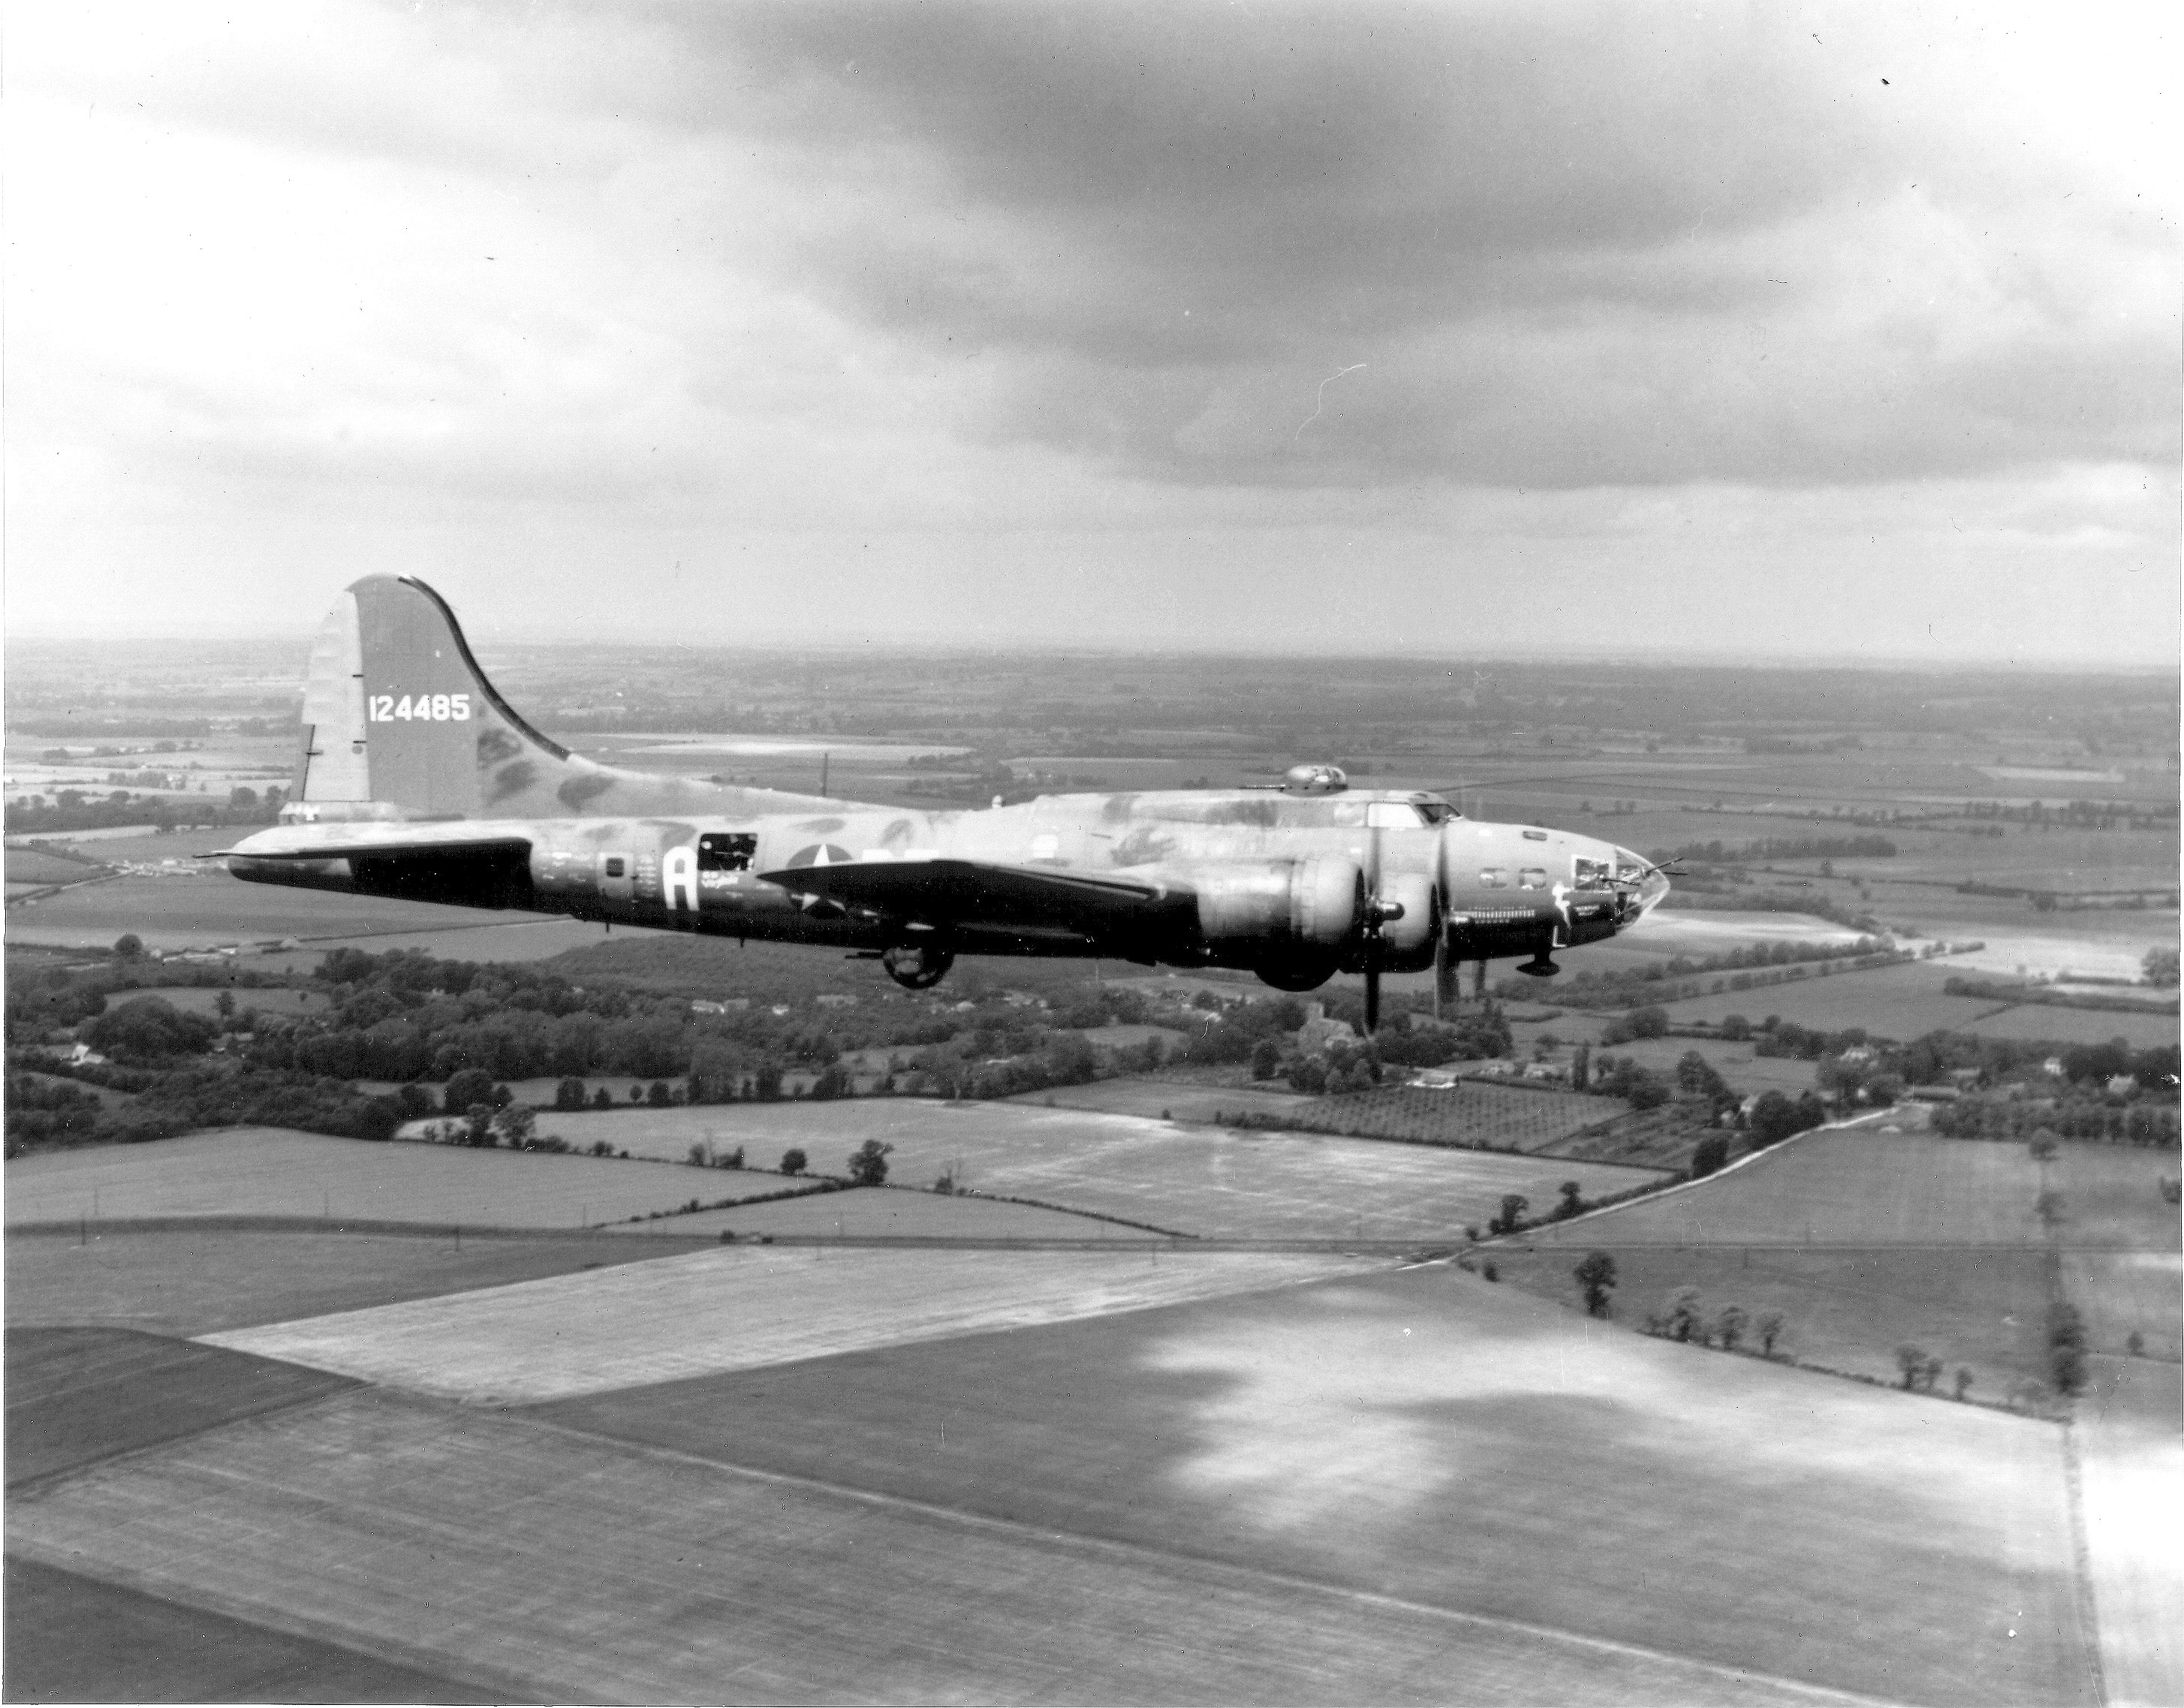 """ENGLAND: AIRPLANES, MEMPHIS BELLE The Boeing B-17 """"The Memphis Belle"""" is pictured on her way back to the United States after completing 25 missions from an airbase in England.      9 June 1943."""